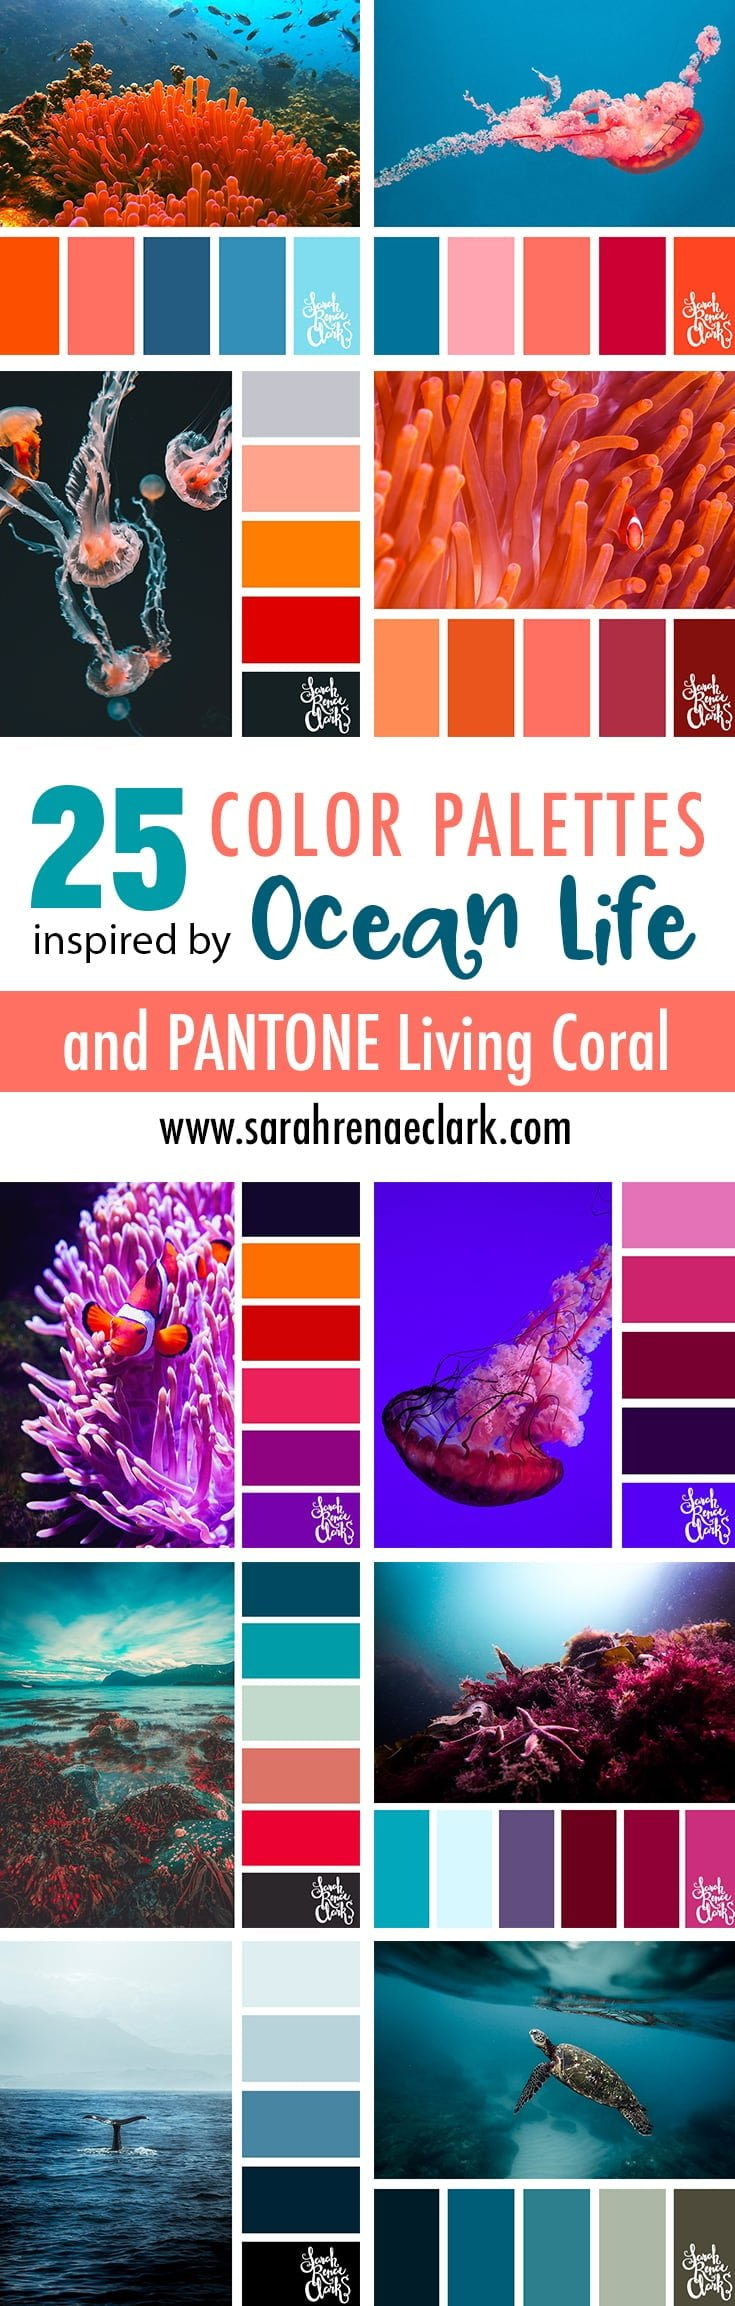 25 Color Palettes inspired by Ocean Life and PANTONE Living Coral